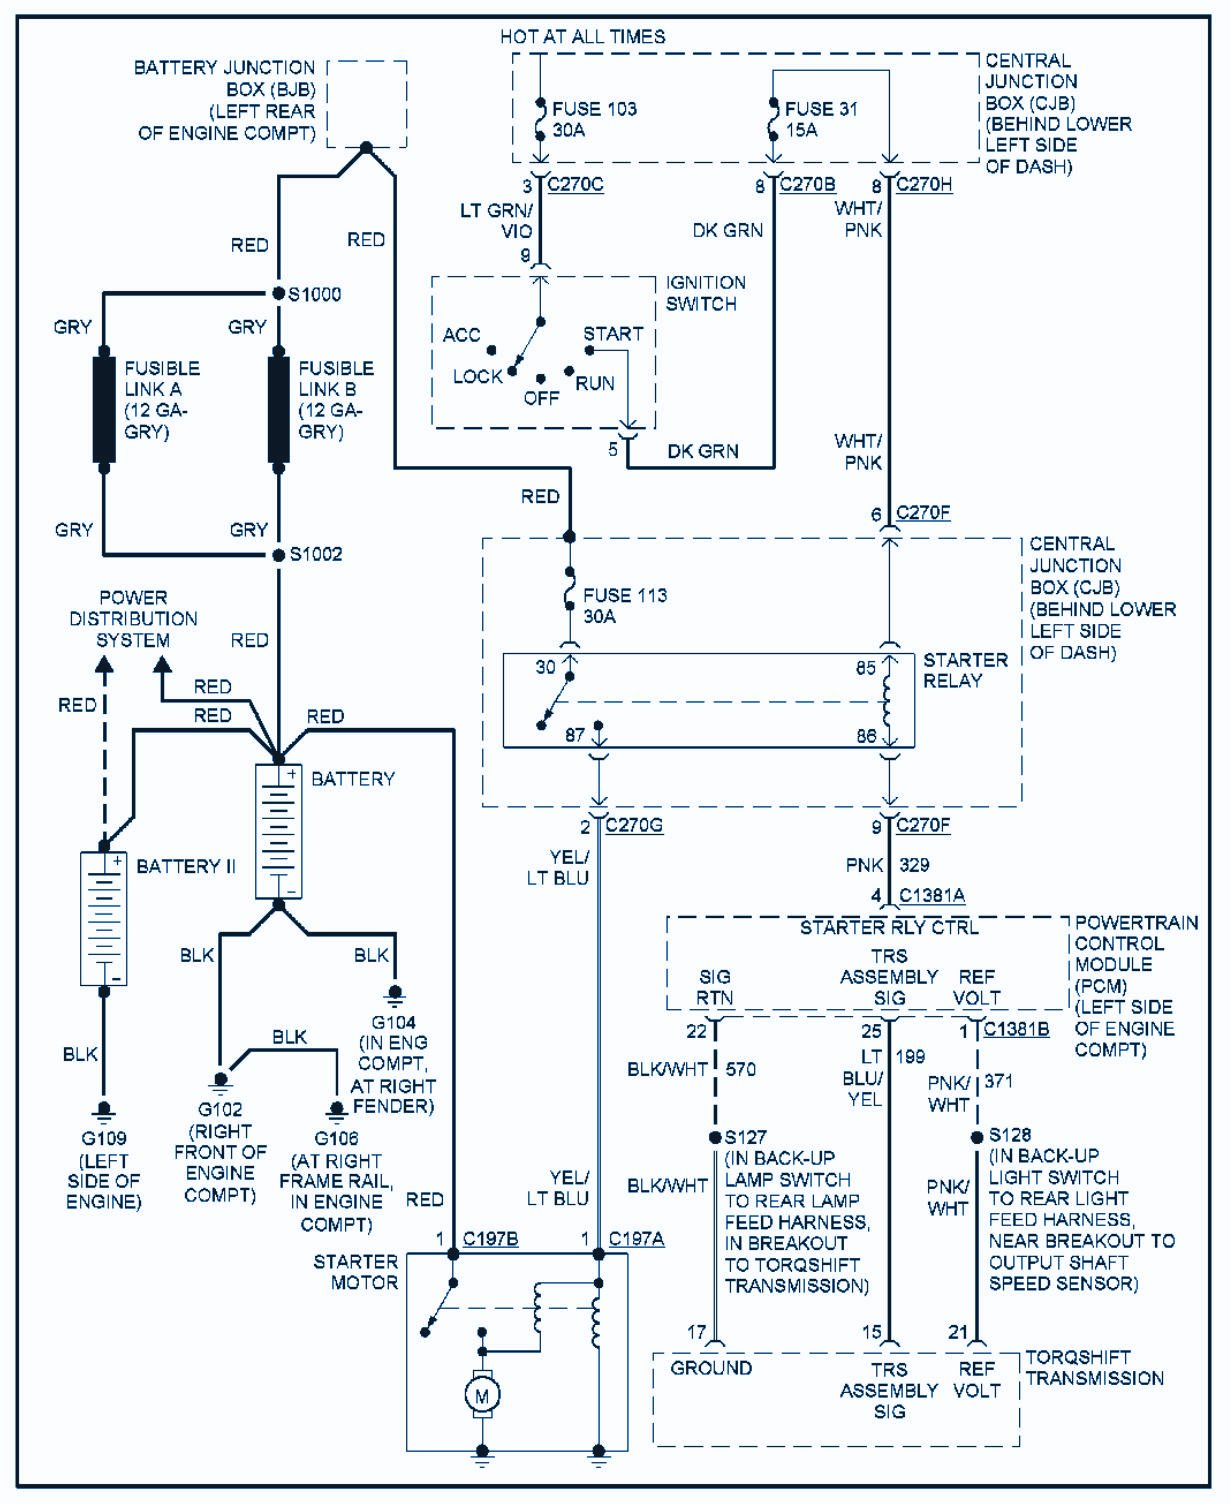 1994 f 350 wiring diagram january 2012 | auto wiring diagrams